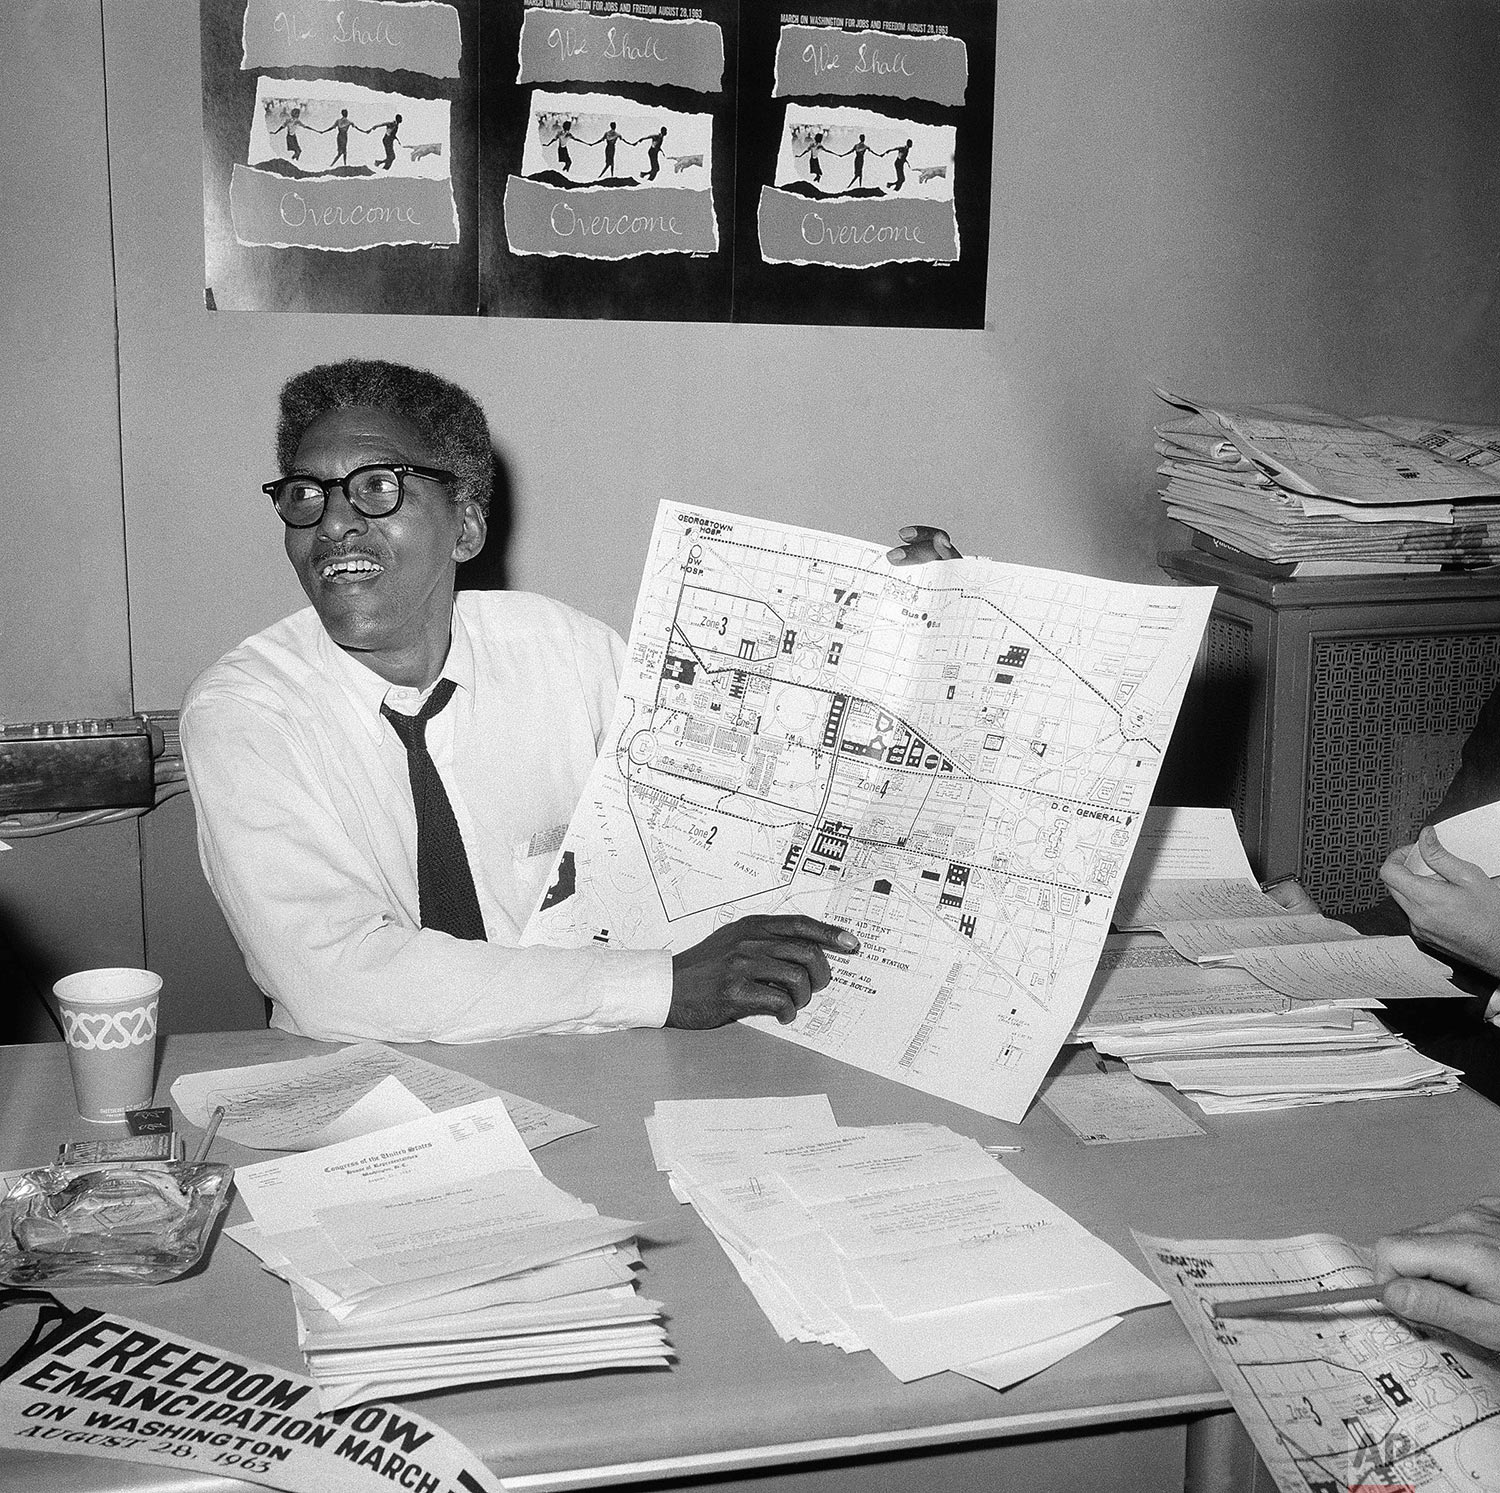 """In this Aug. 24, 1963 file photo, Bayard Rustin points to a map showing the path of the March on Washington during a news conference at the New York City headquarters. Months before Martin Luther King Jr.'s """"I Have a Dream"""" declaration galvanized a quarter-million people at the 1963 March on Washington, Rustin was planning all the essential details to keep the crowd orderly and engaged. A Quaker and a pacifist, Rustin served as chief strategist for King's march over the objections of some leaders, but was kept mostly in the background with some organizers considering him a liability. Notably, he was gay in an era when same-sex relations were widely reviled in American society. He died in 1987, and is sometimes forgotten in civil rights history. (AP Photo)"""